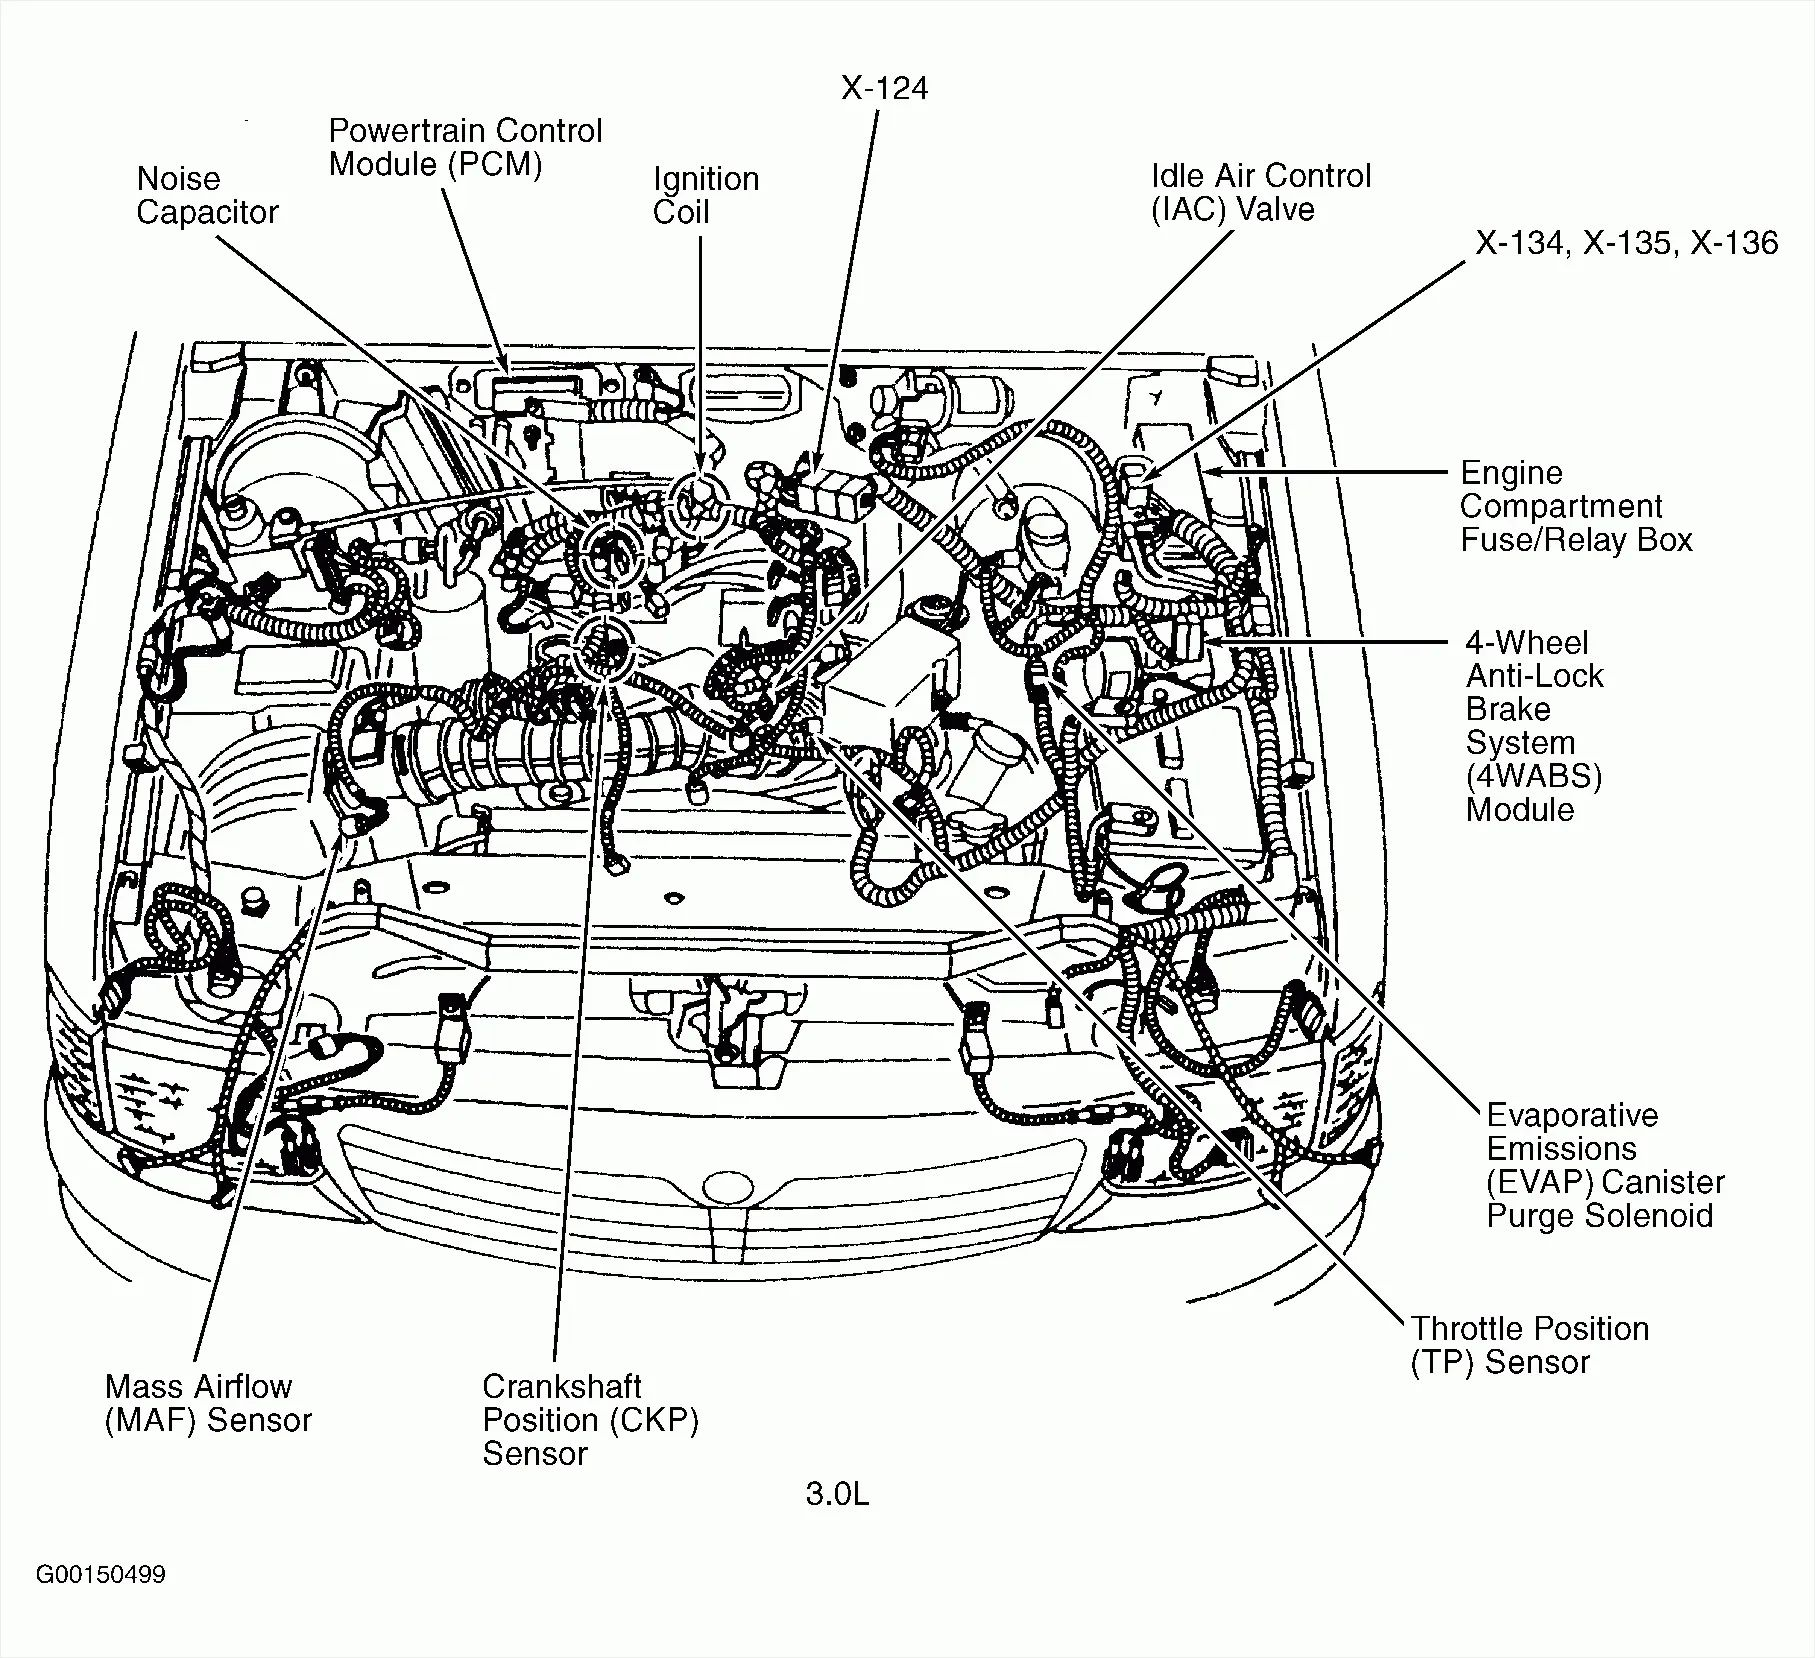 hight resolution of diagram of 1999 audi a6 engine compartment